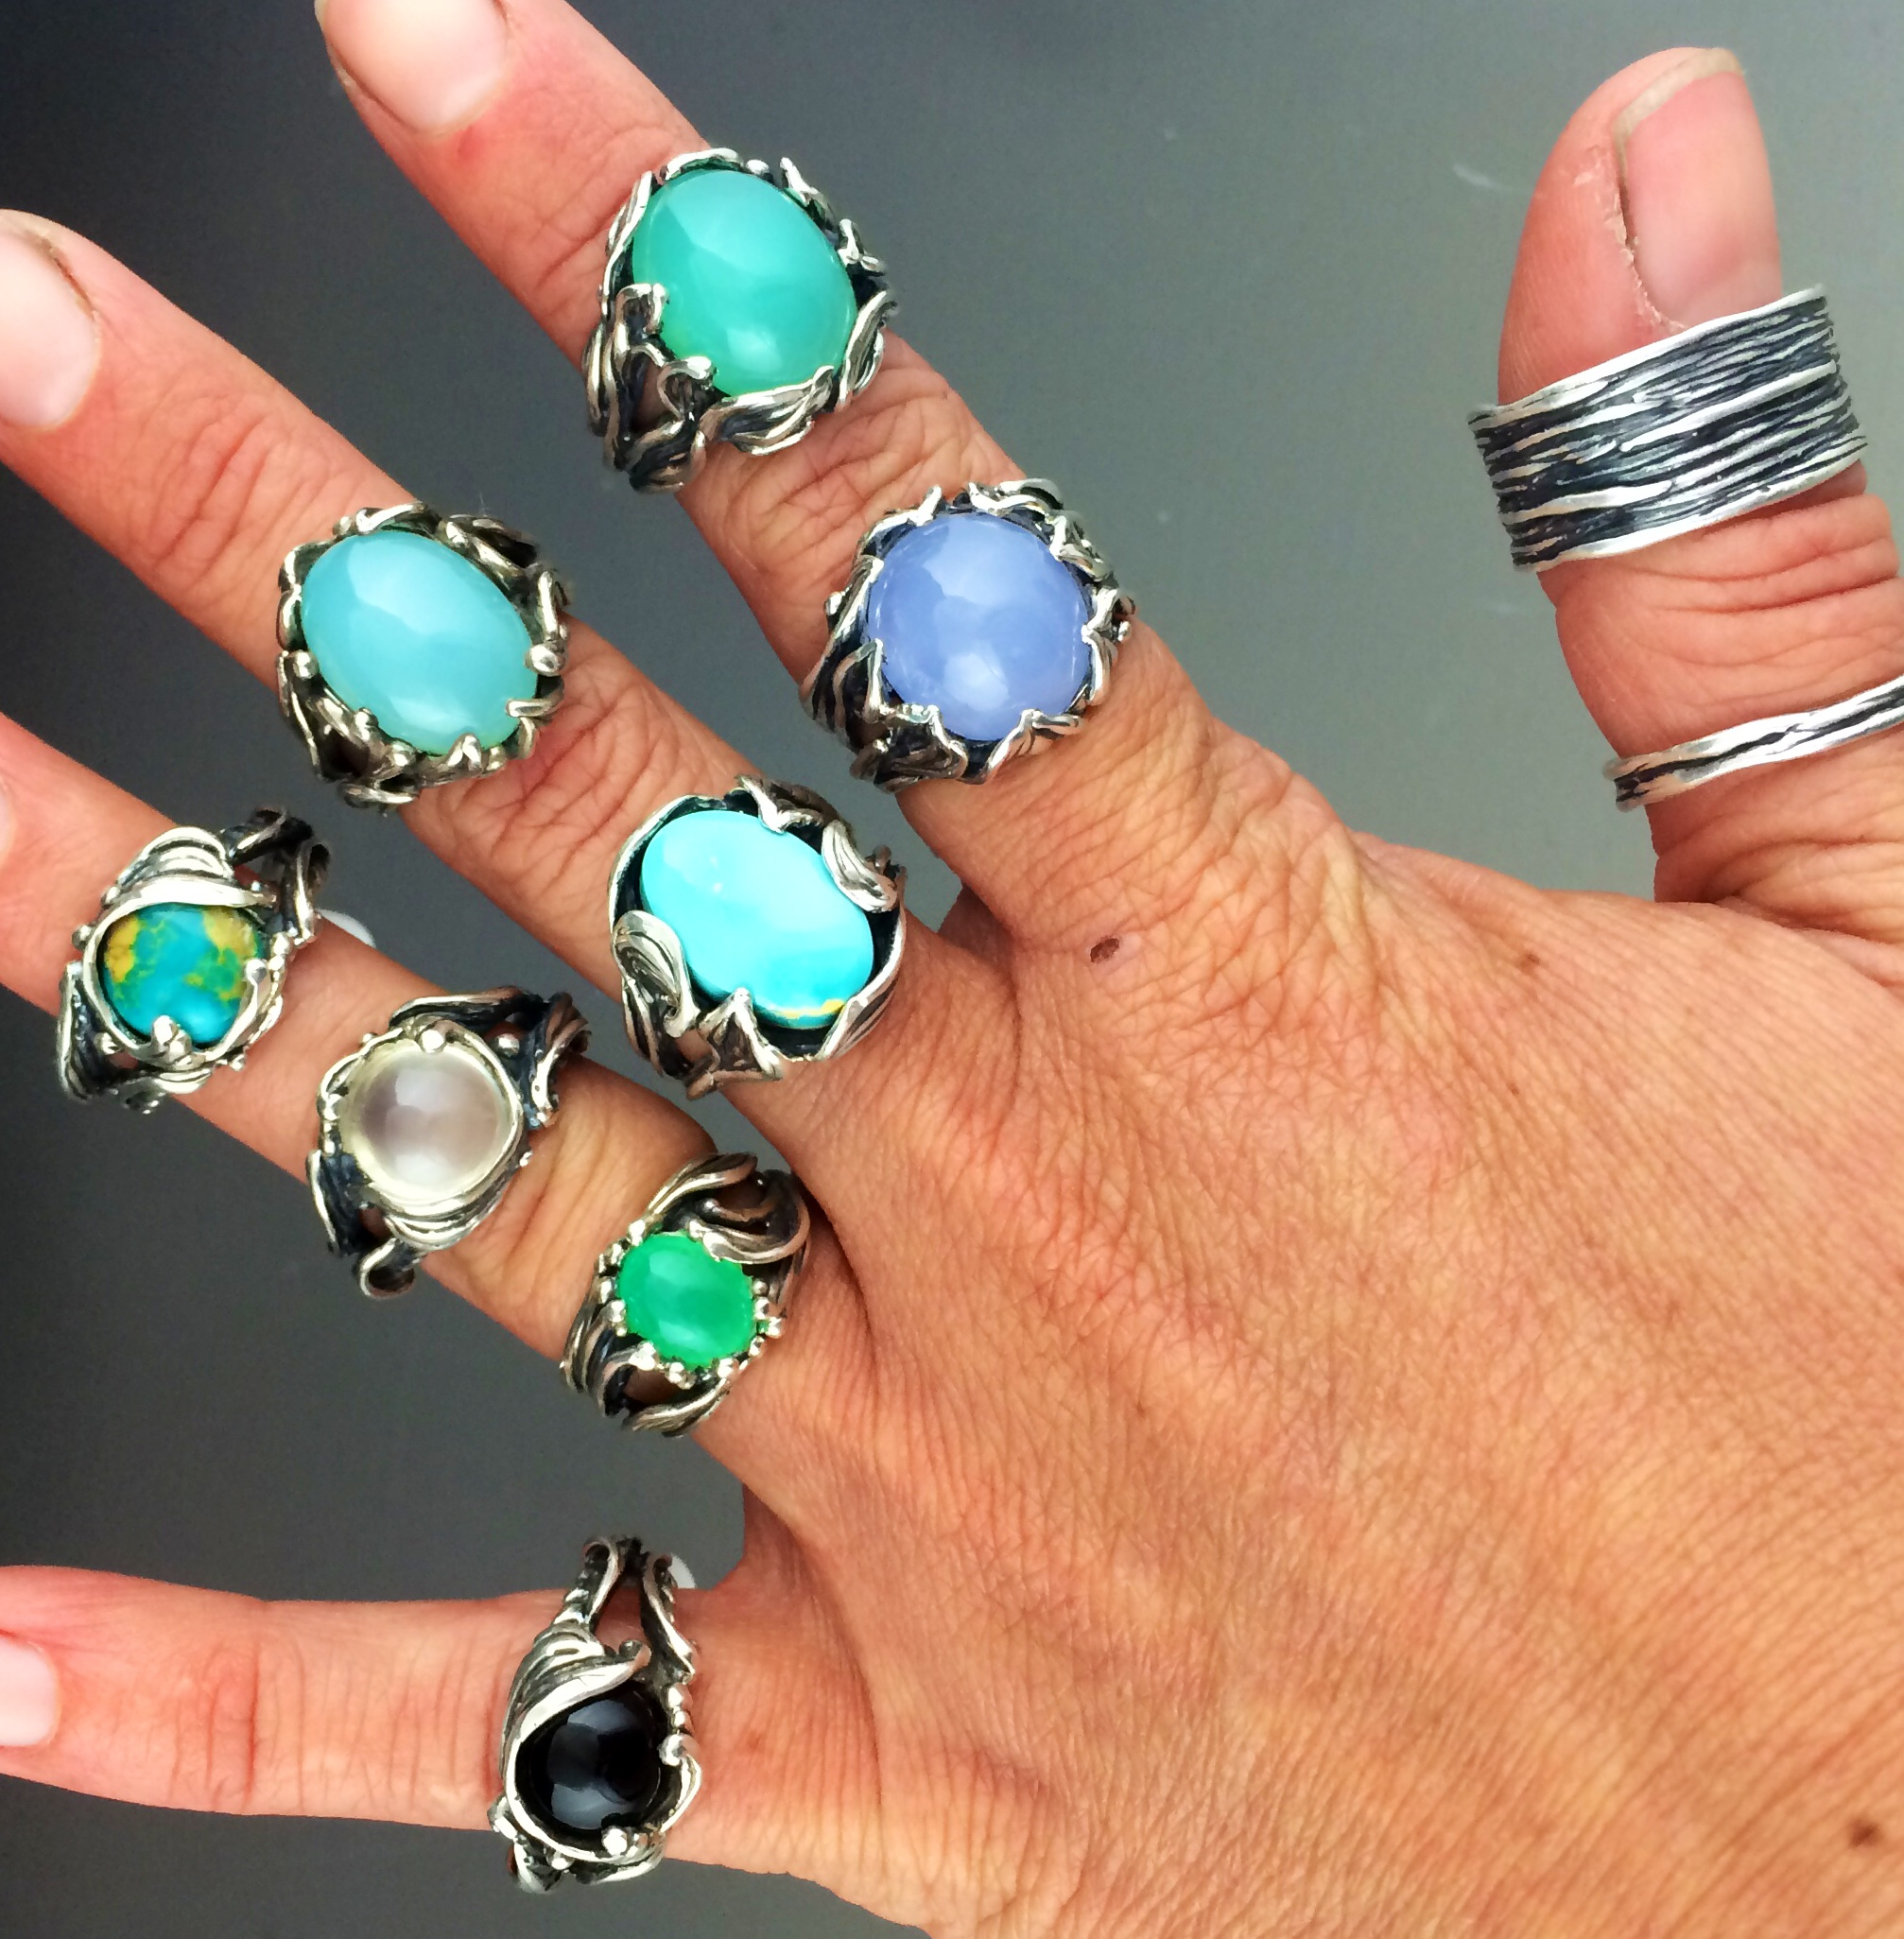 Handmade silver rings cleaned up and set with turquoise, cheysoprase, moonstone, onyx and blue chalcedony.